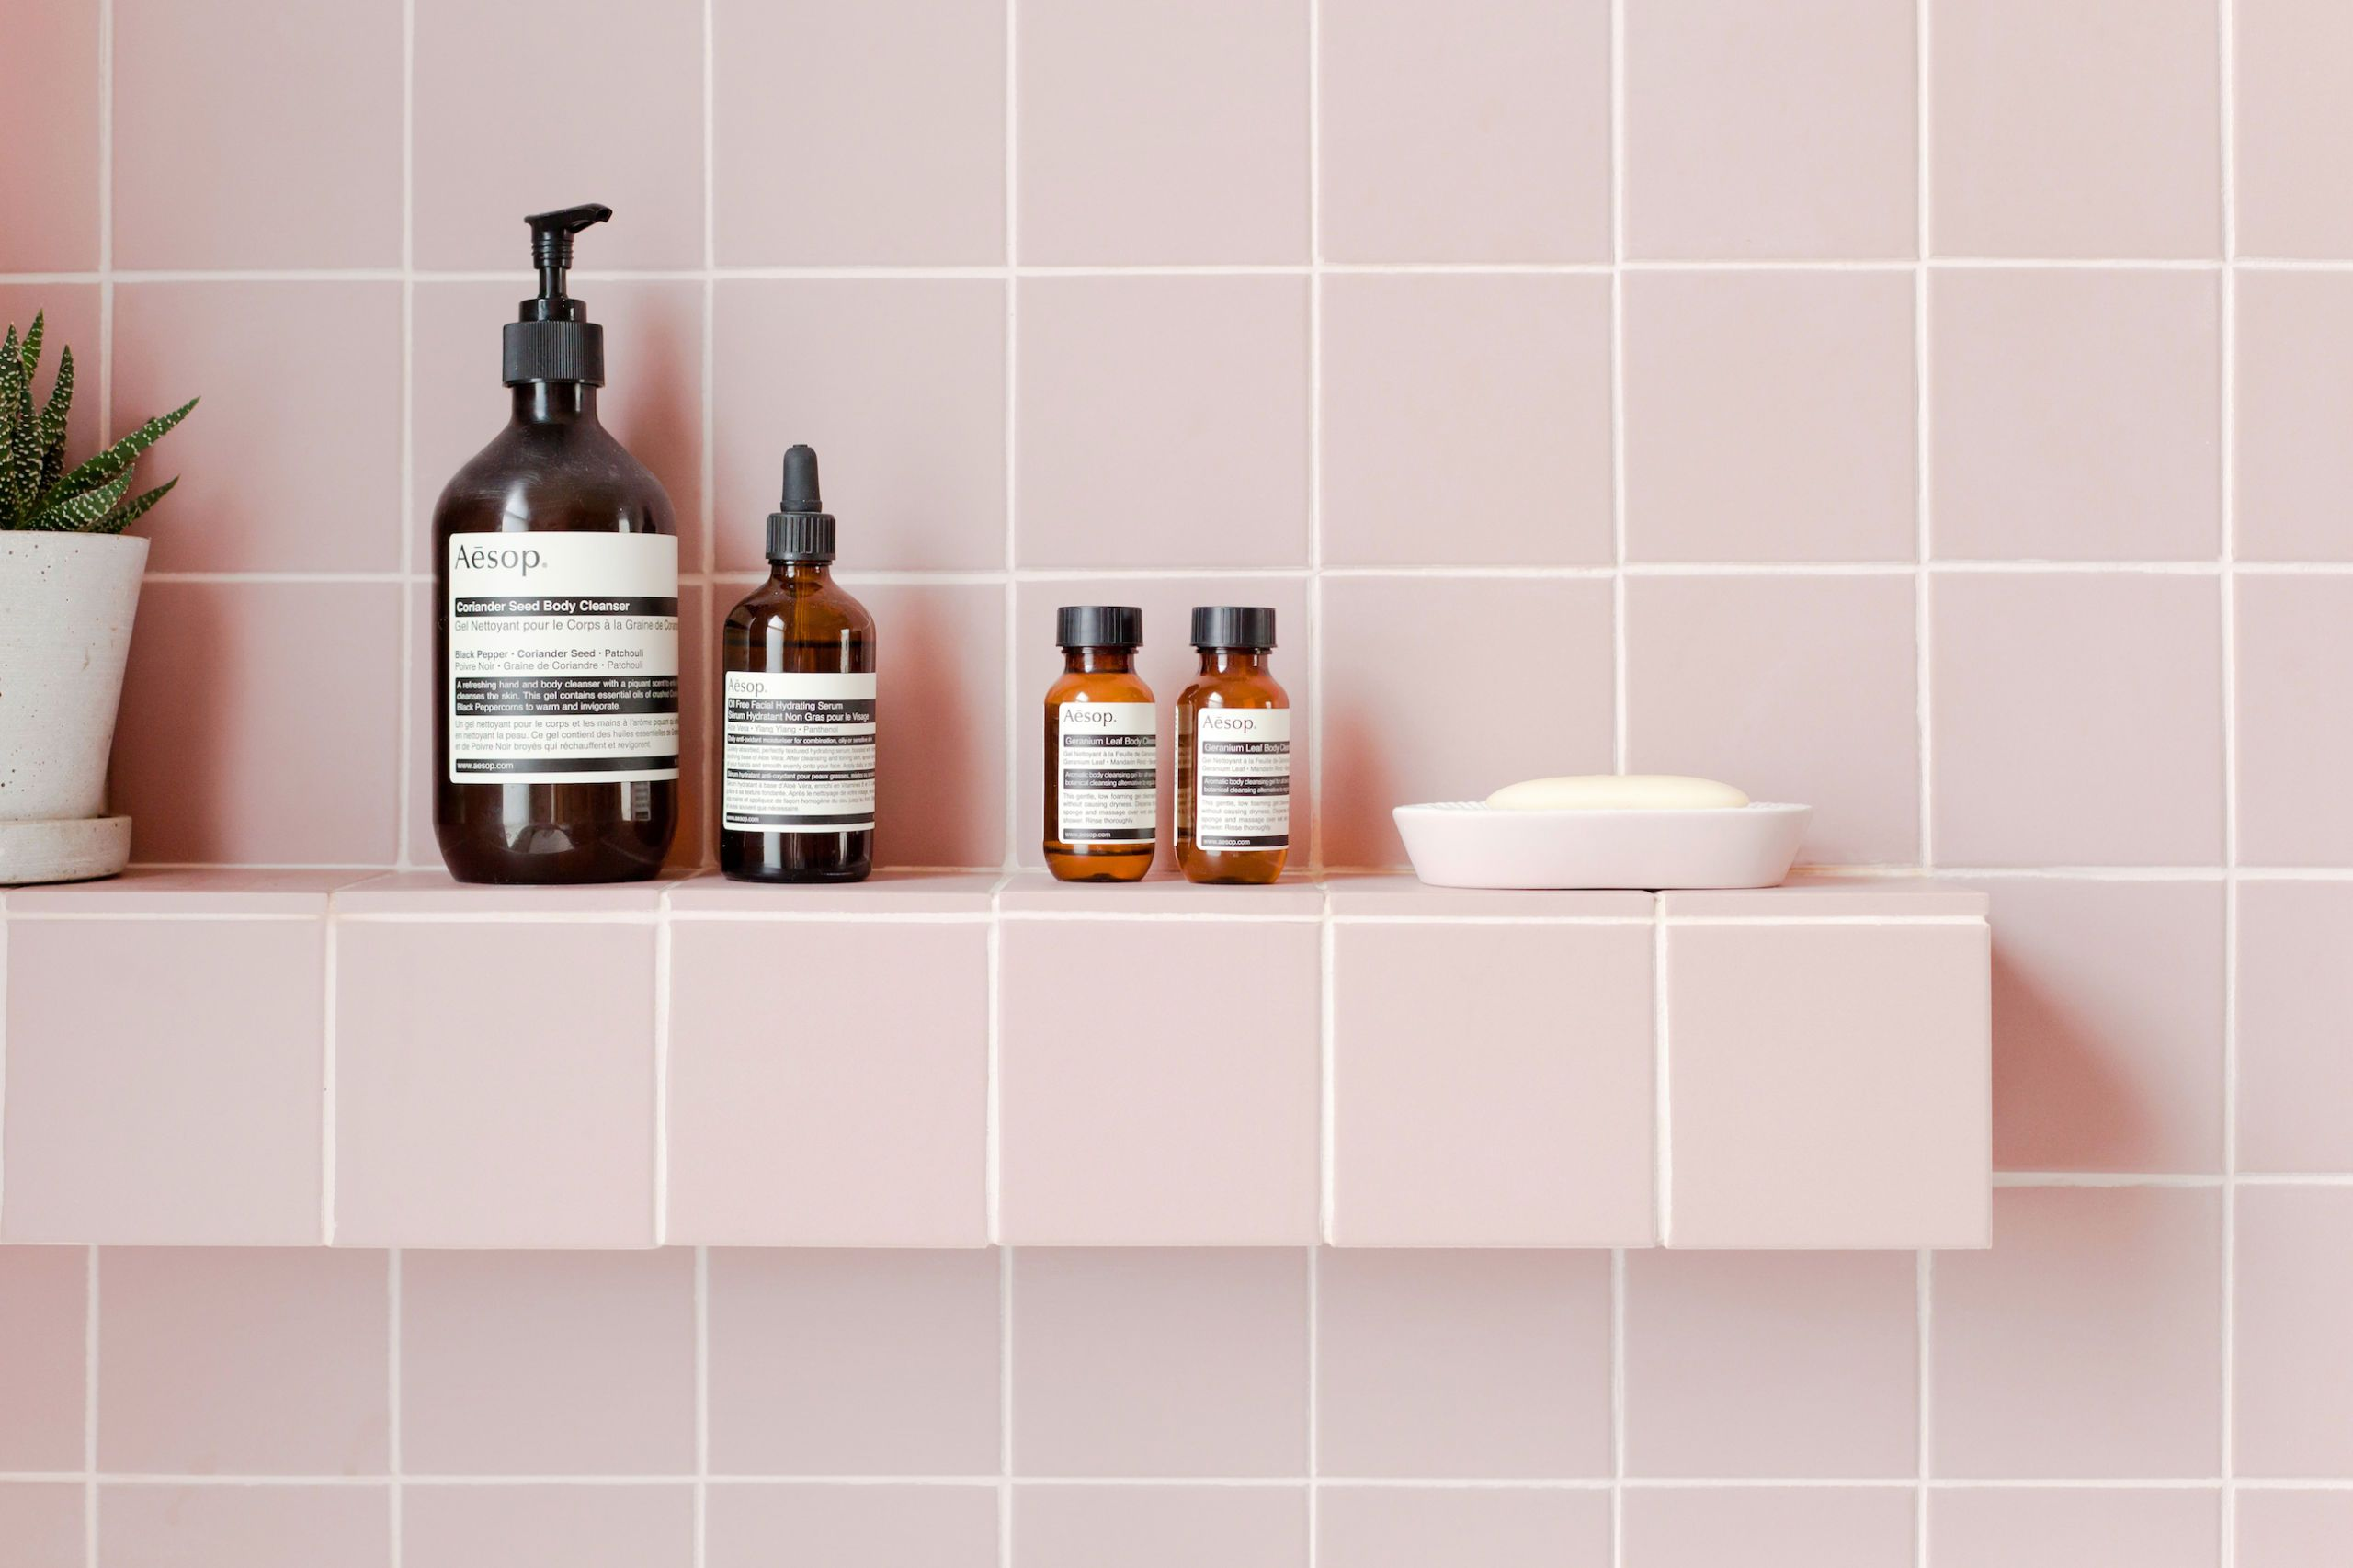 Charmant 2LG Studio   Pink Bathroom Look: Tile Giant Victorian Pink Tiles And  Products From Victoria